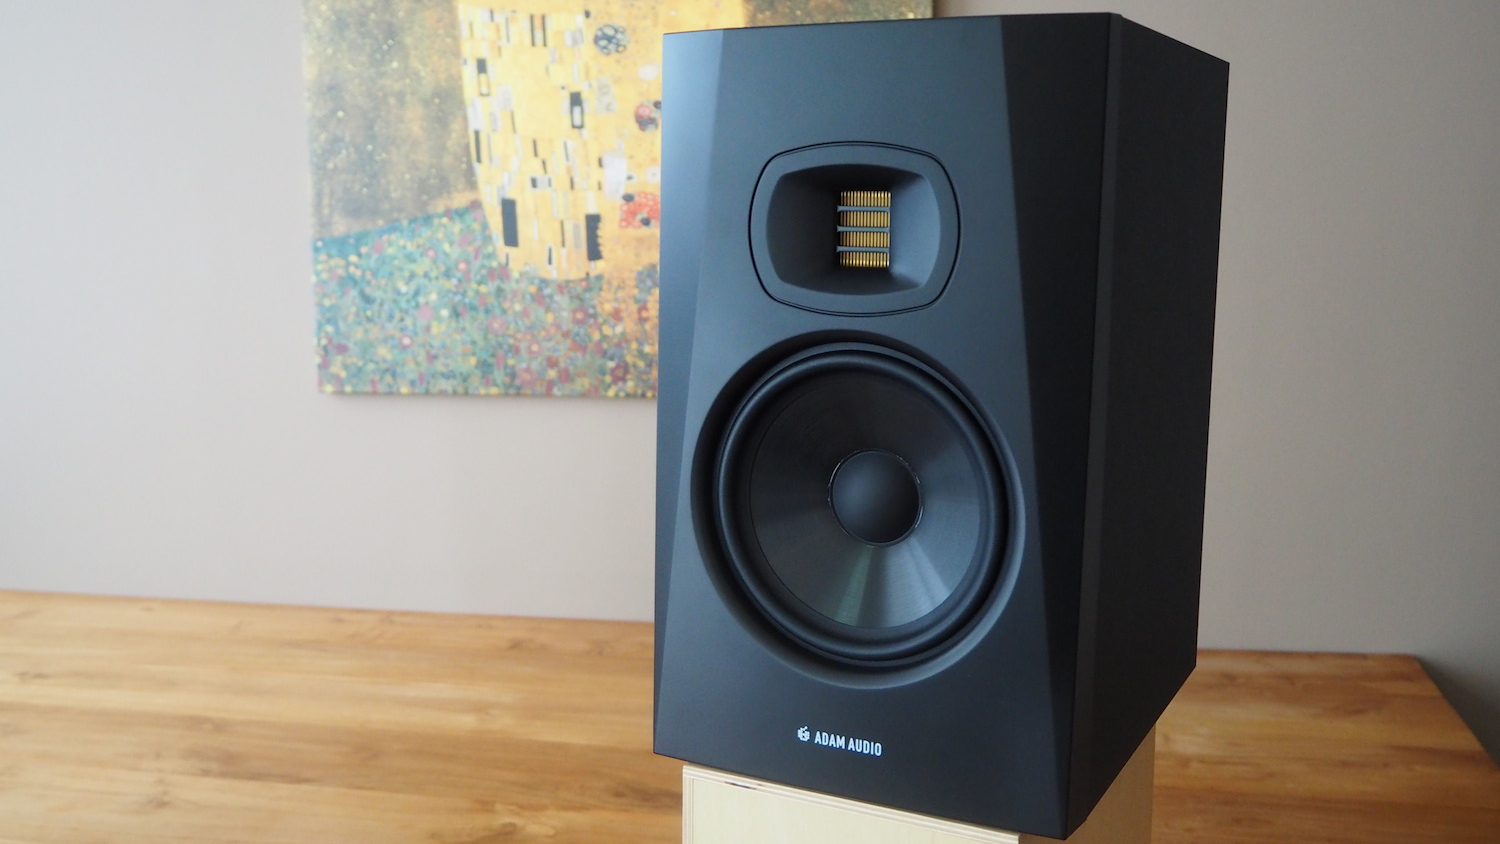 review-adam-audio-t7v-right-the-wong-janice-cellist-music-producer-amsterdam.JPG